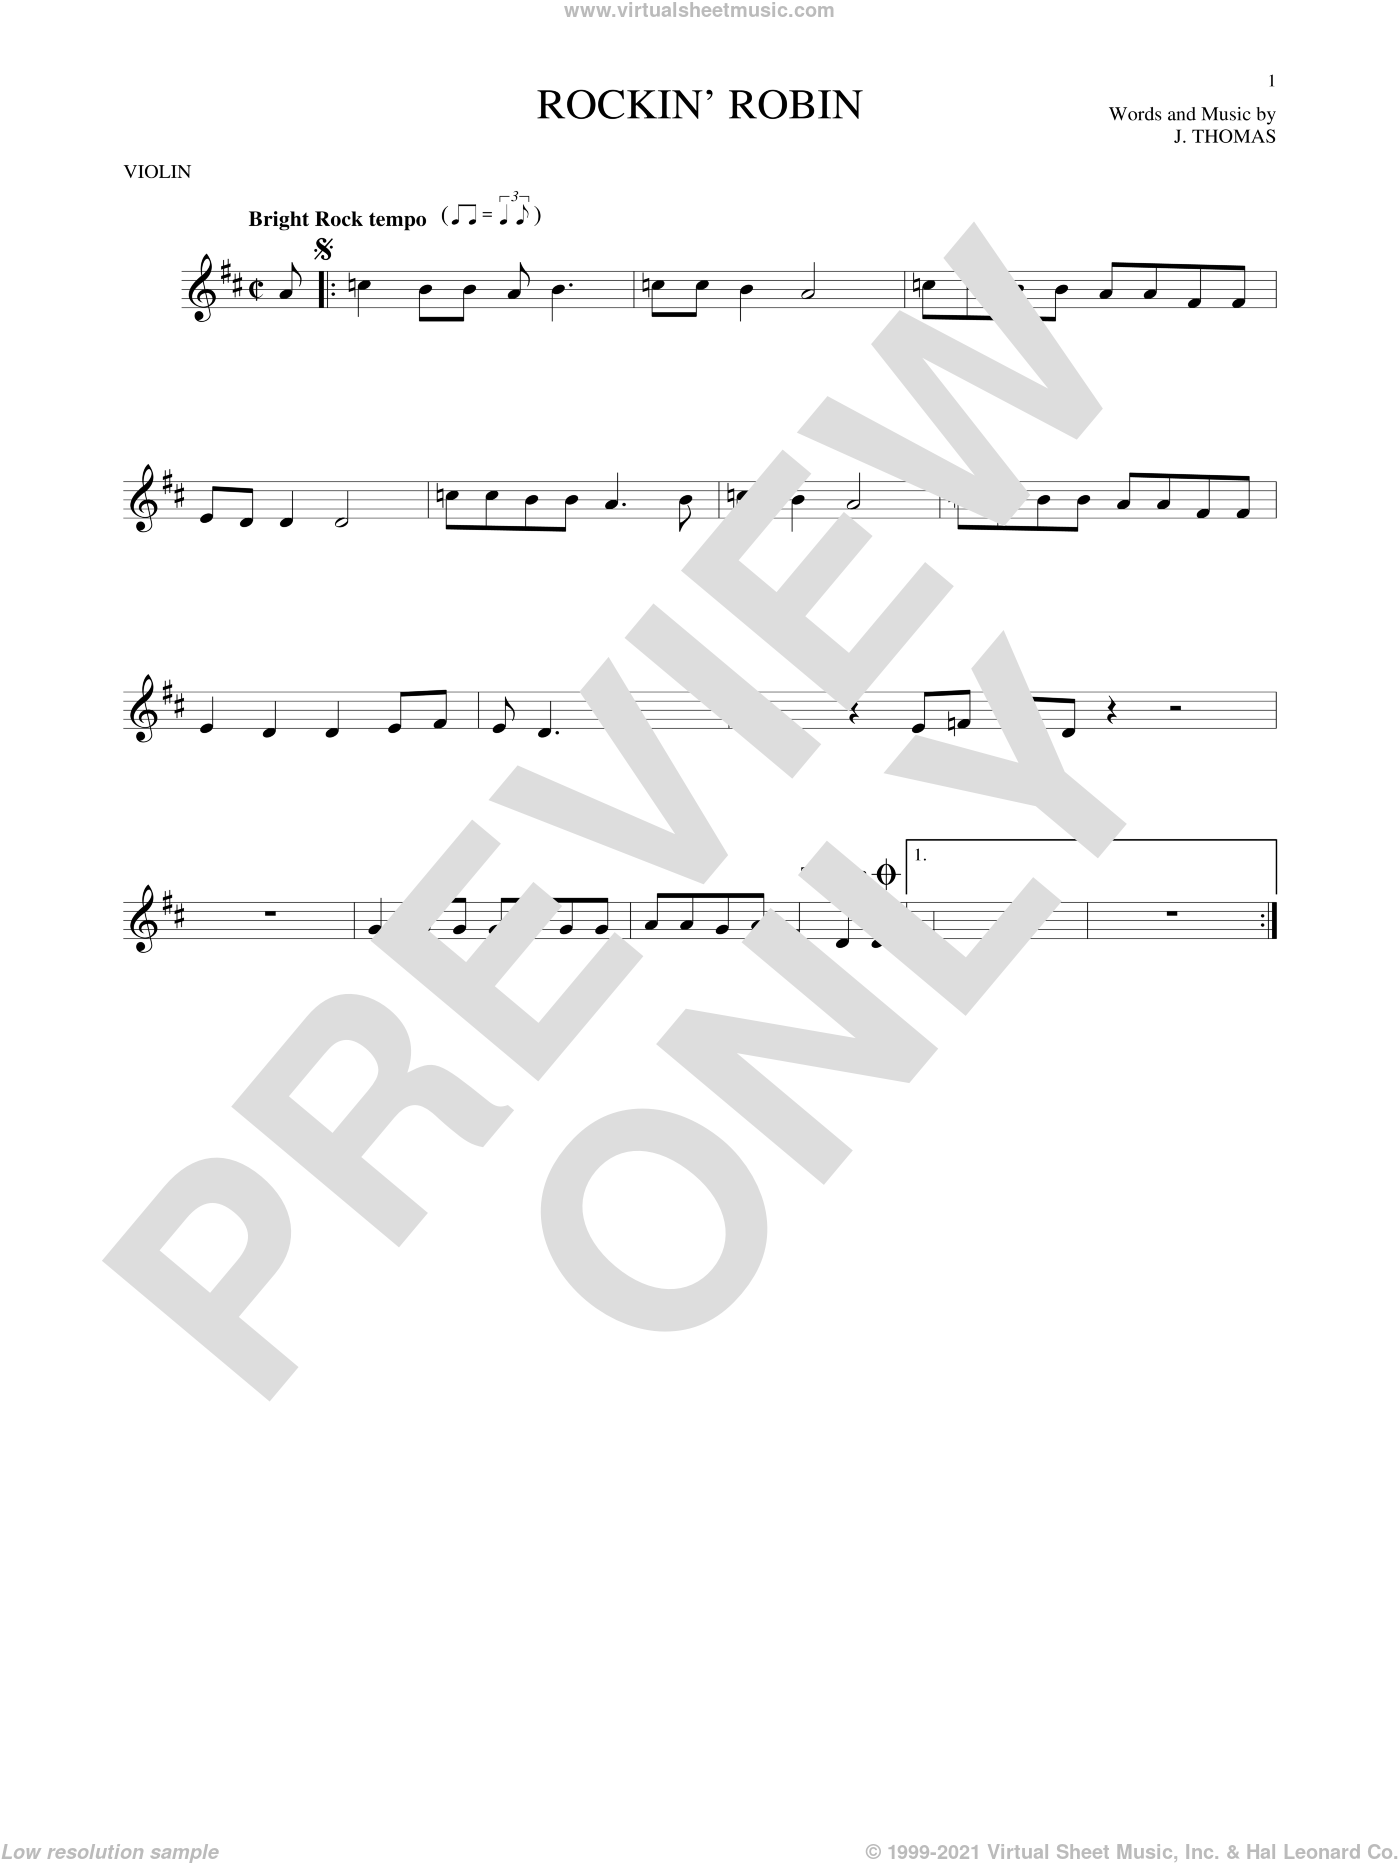 Rockin' Robin sheet music for violin solo by Thomas Jimmie